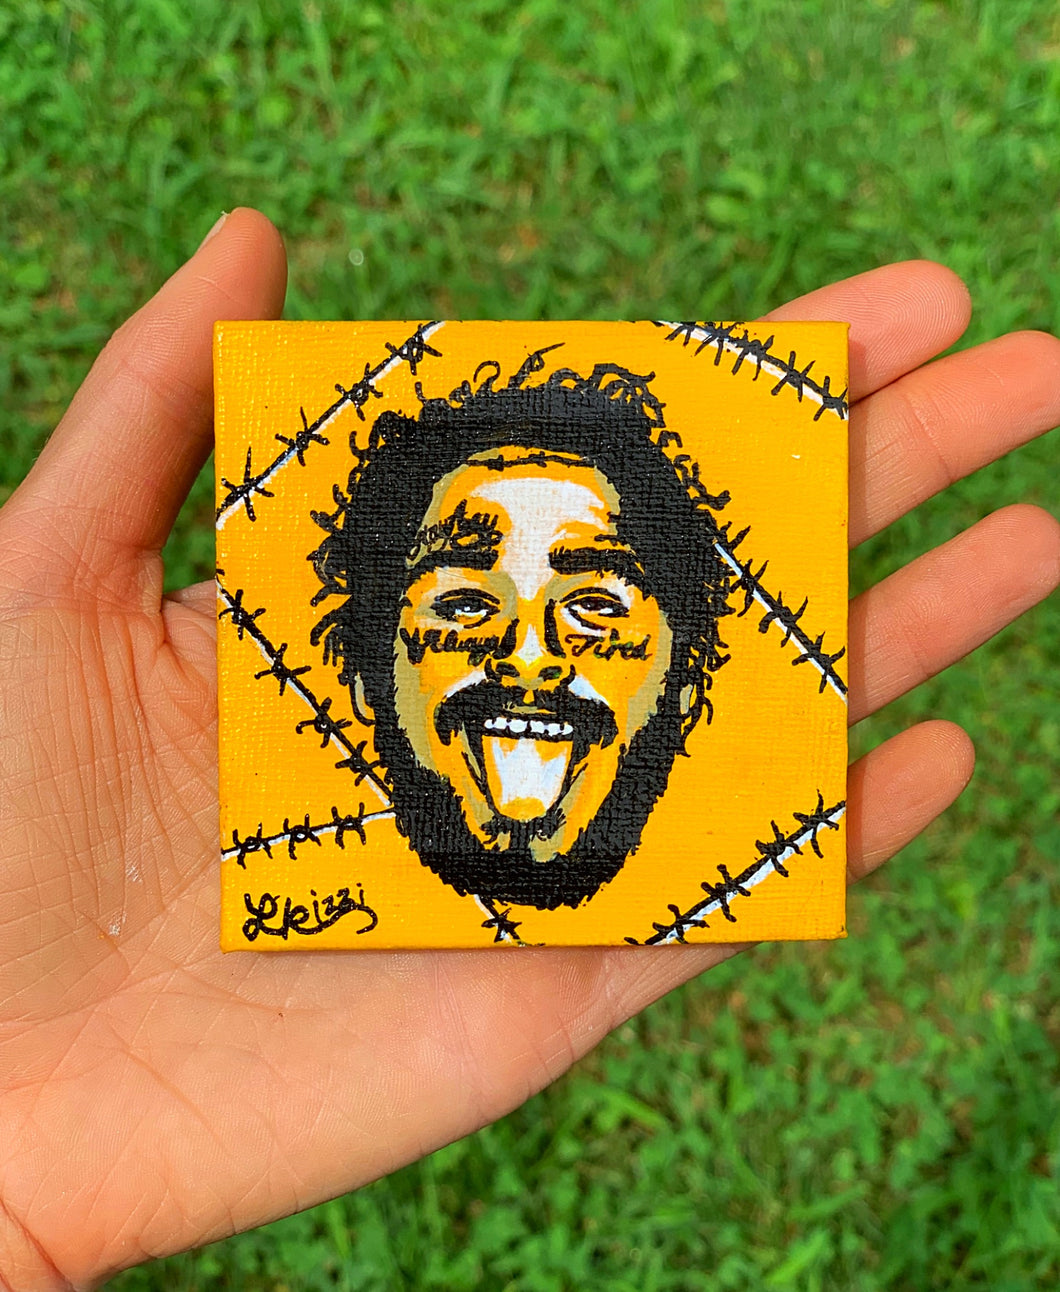 POST MALONE MINI HAND PAINTED CANVAS